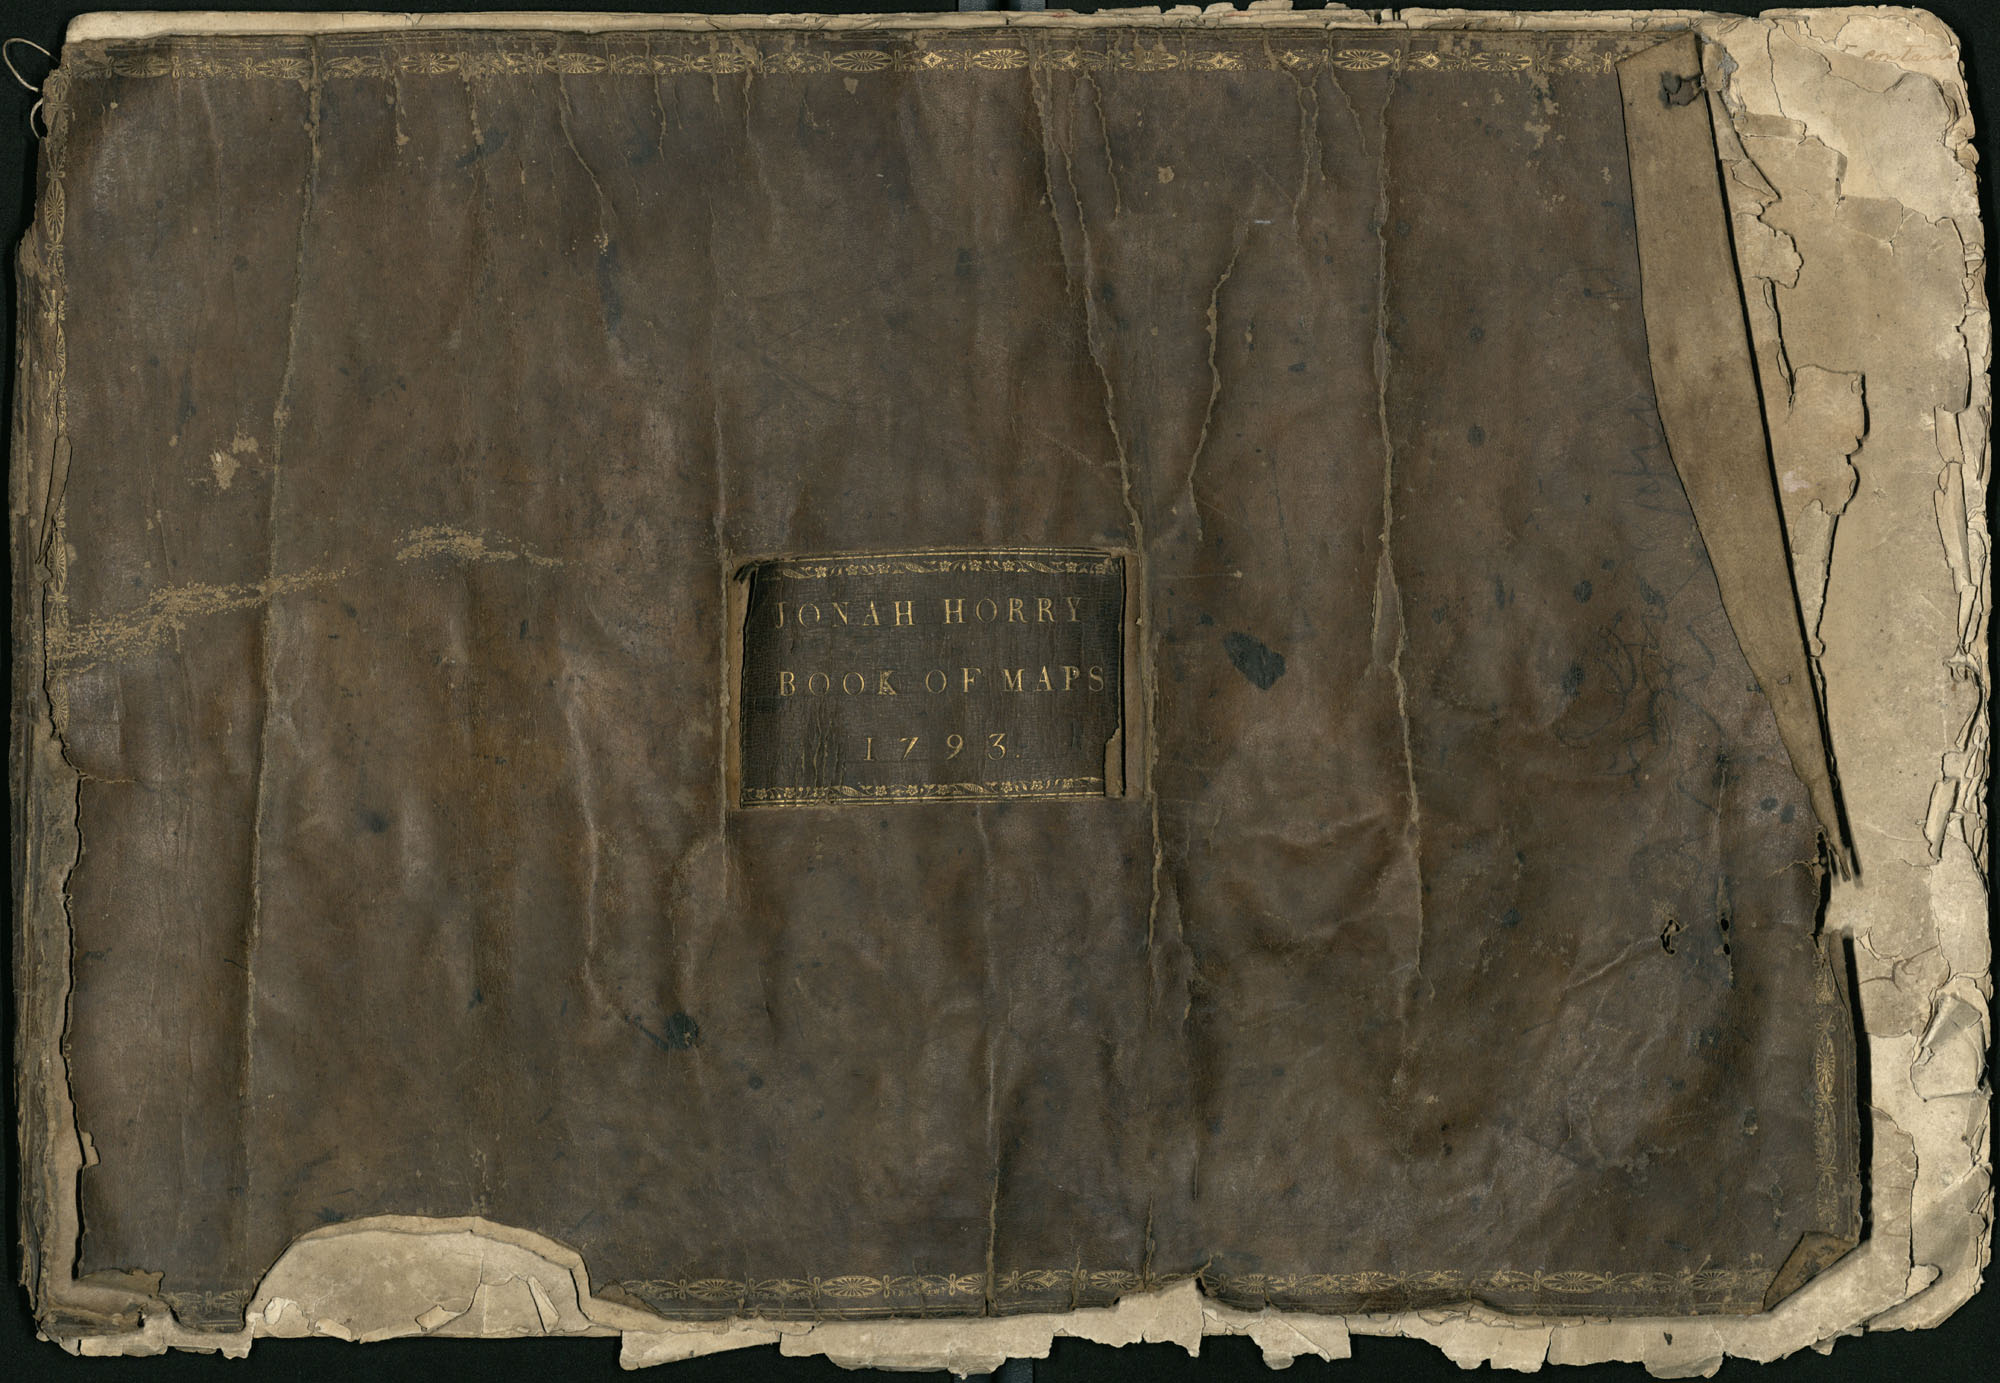 Jonah Horry Book of Maps, 1793